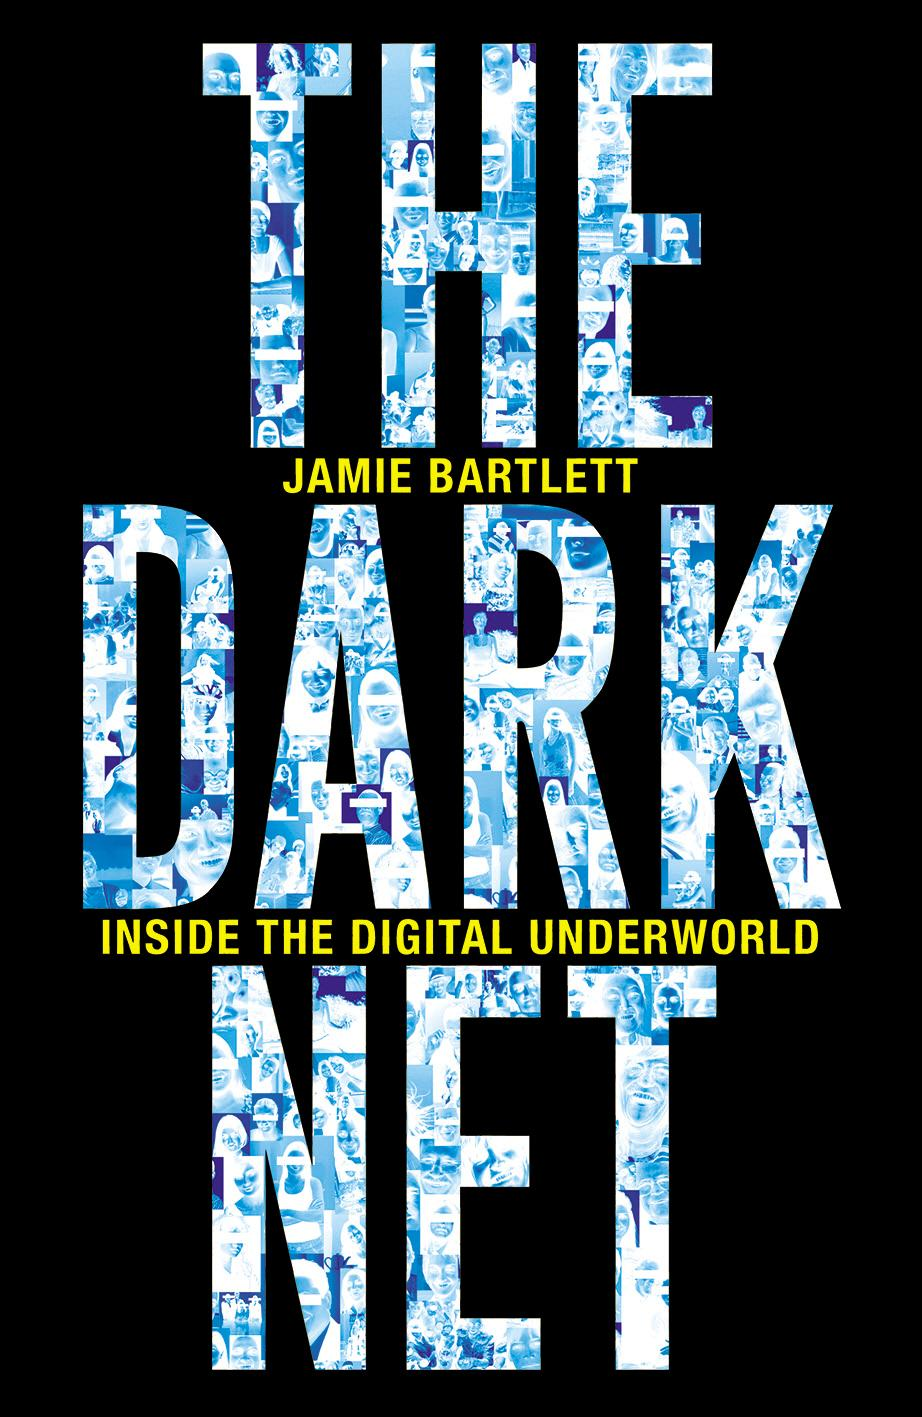 Jamie Bartlett joined our latest breakfast club to give us his take on THE DARK NET: http://t.co/XYk6lqd6KK http://t.co/6D1axJhAWr